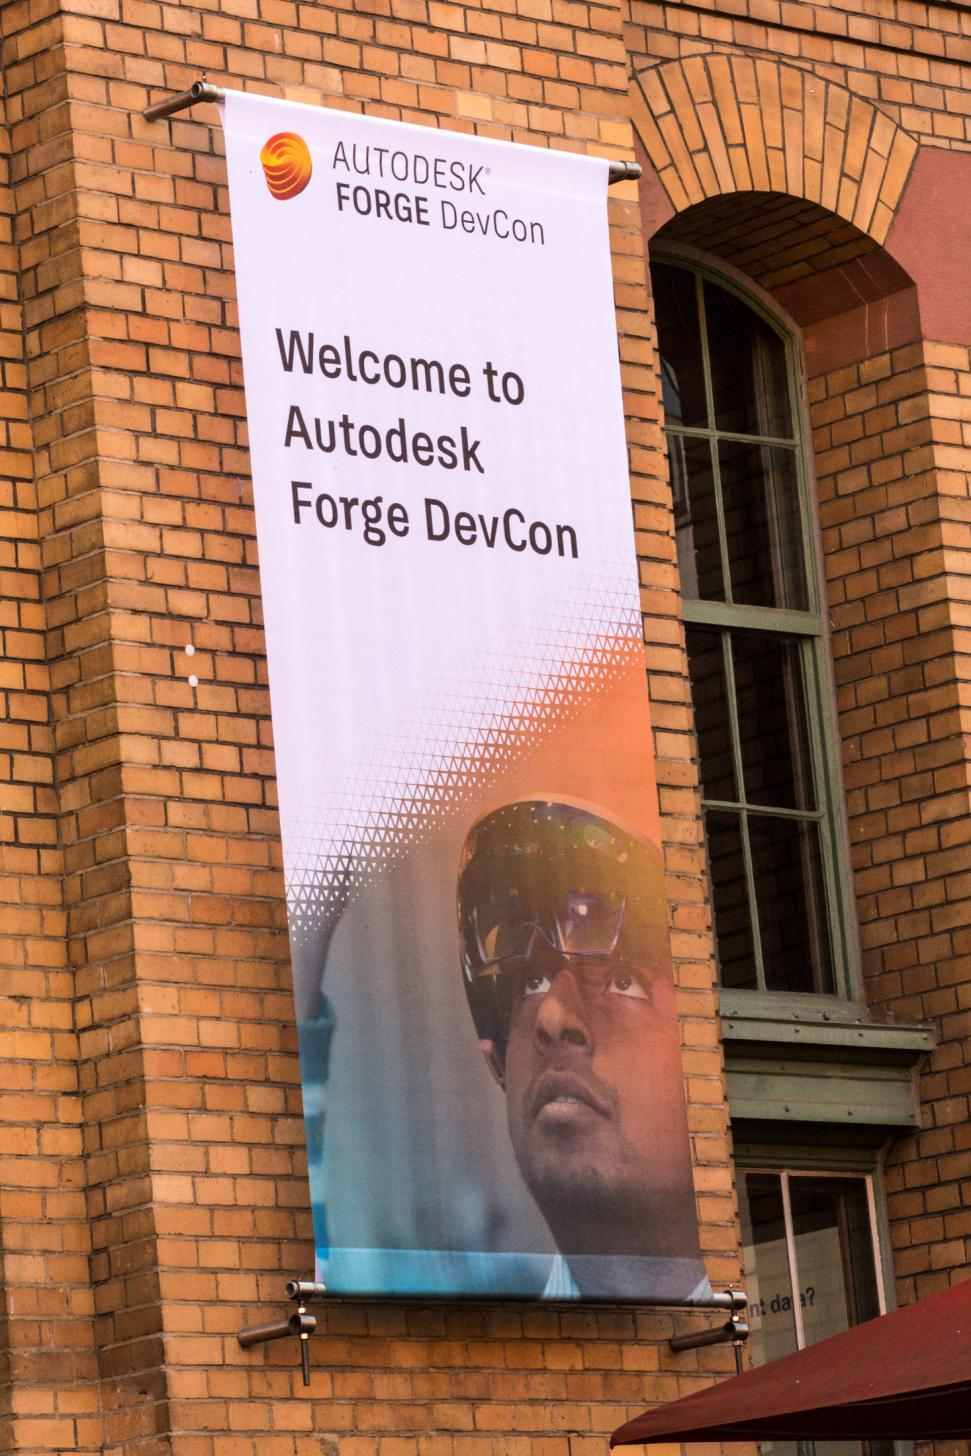 Forge DevCon in Darmstadt keynote speakers have been announced.